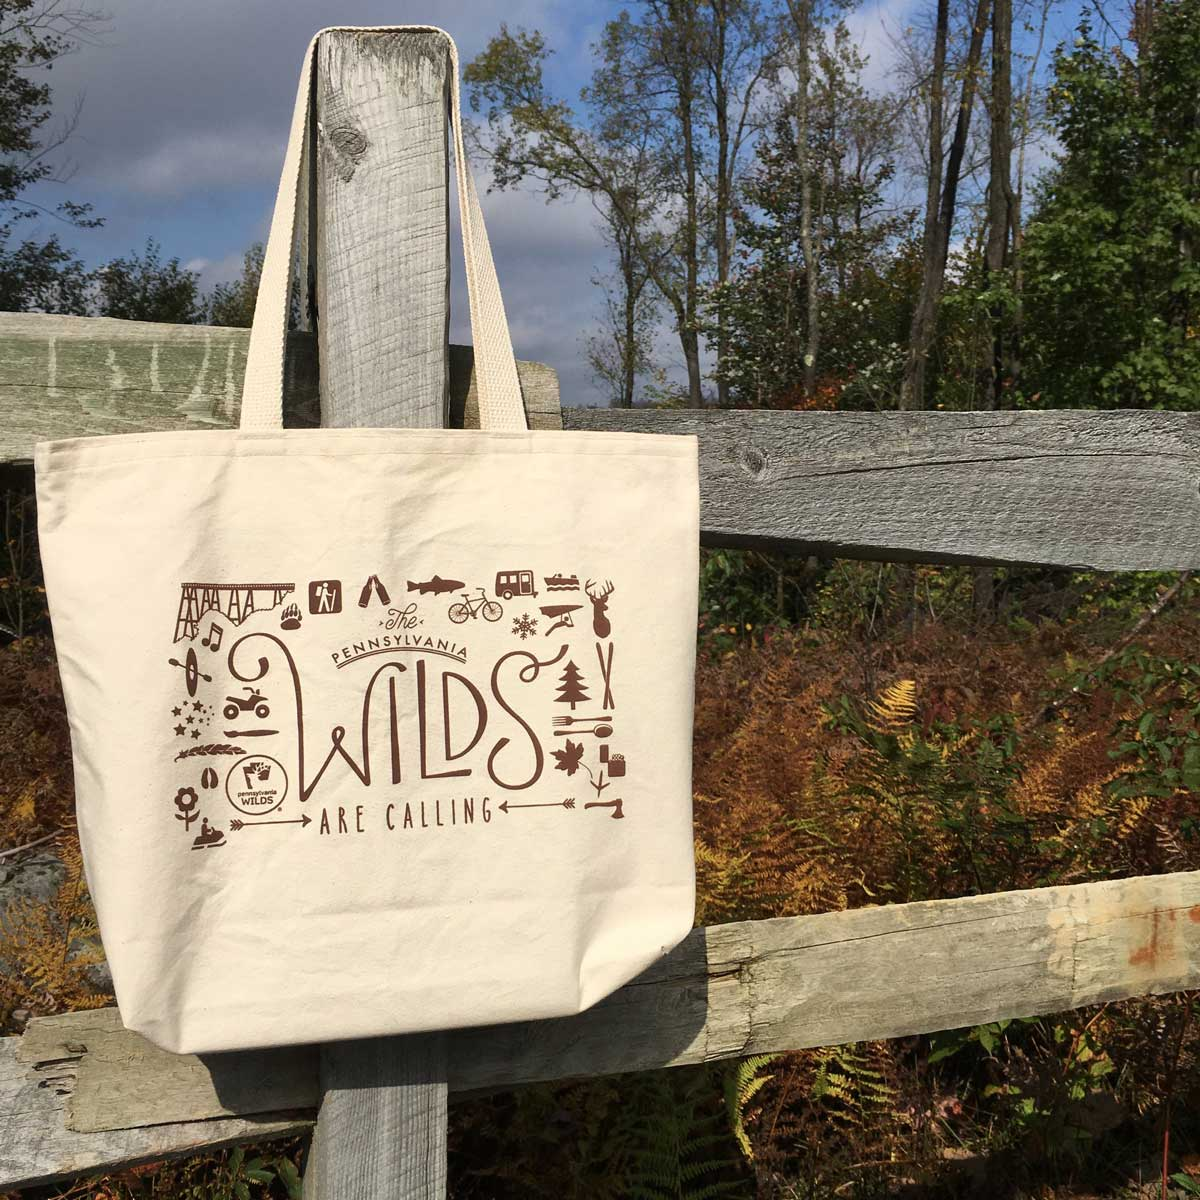 Wilds are Calling tote on a fence